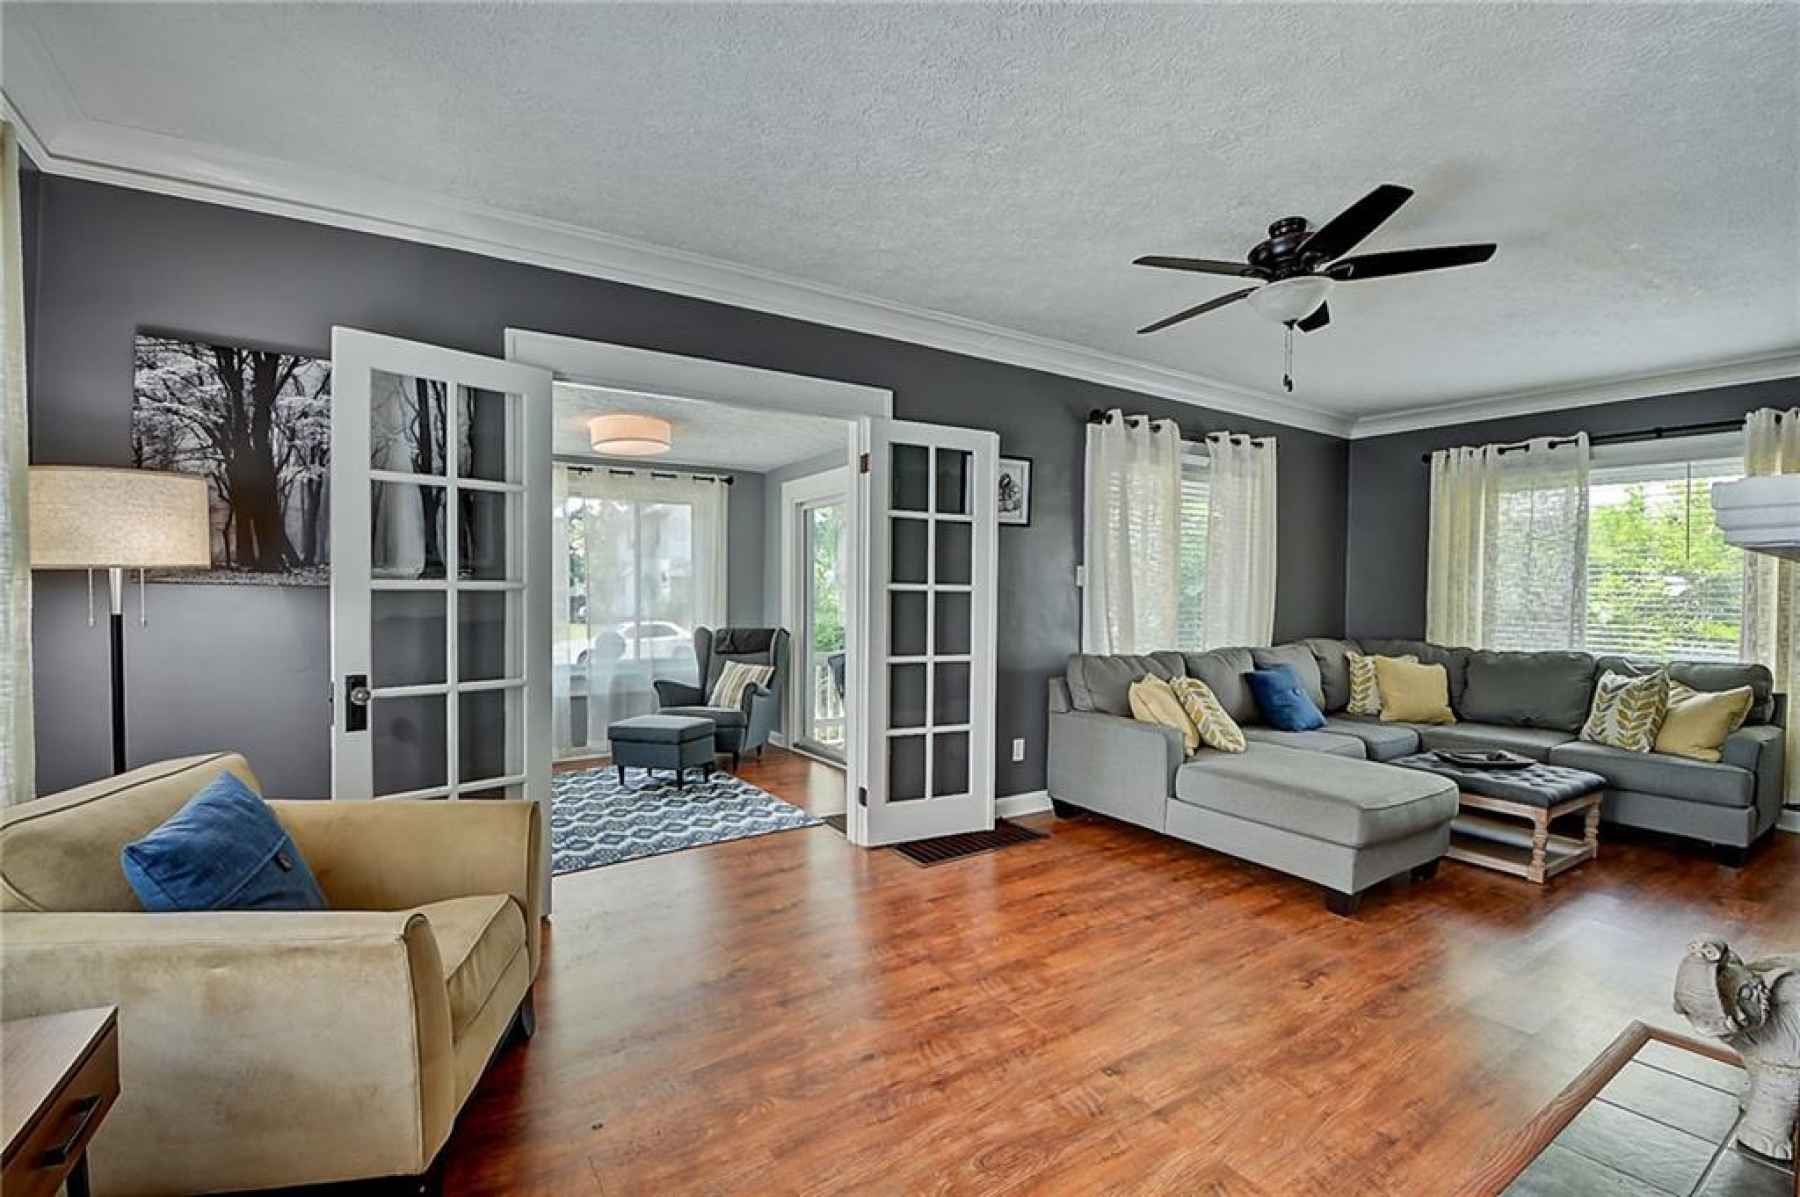 Large living room with a cozy sunroom, perfect as an office, playroom, or plant area!